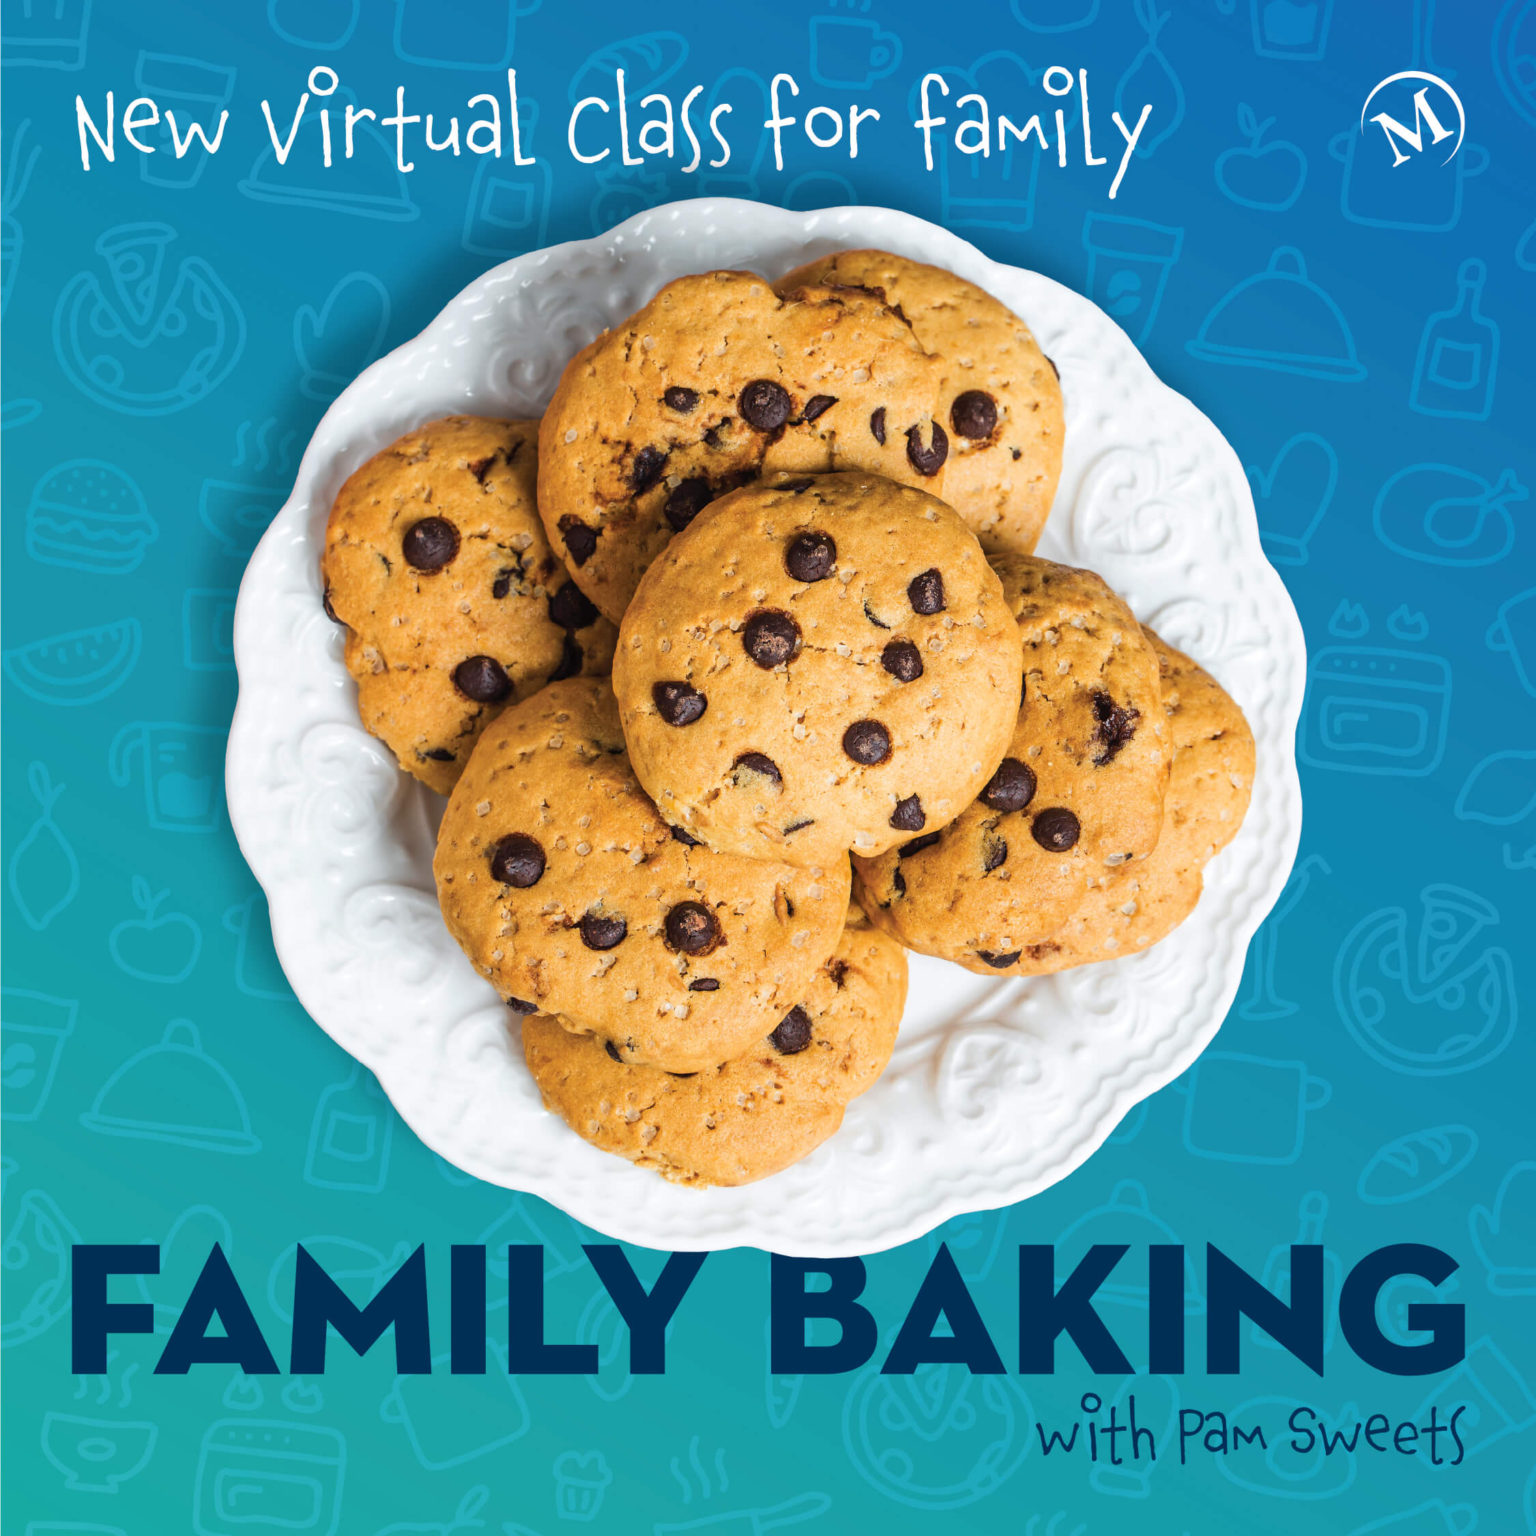 Family Baking Profile Picture